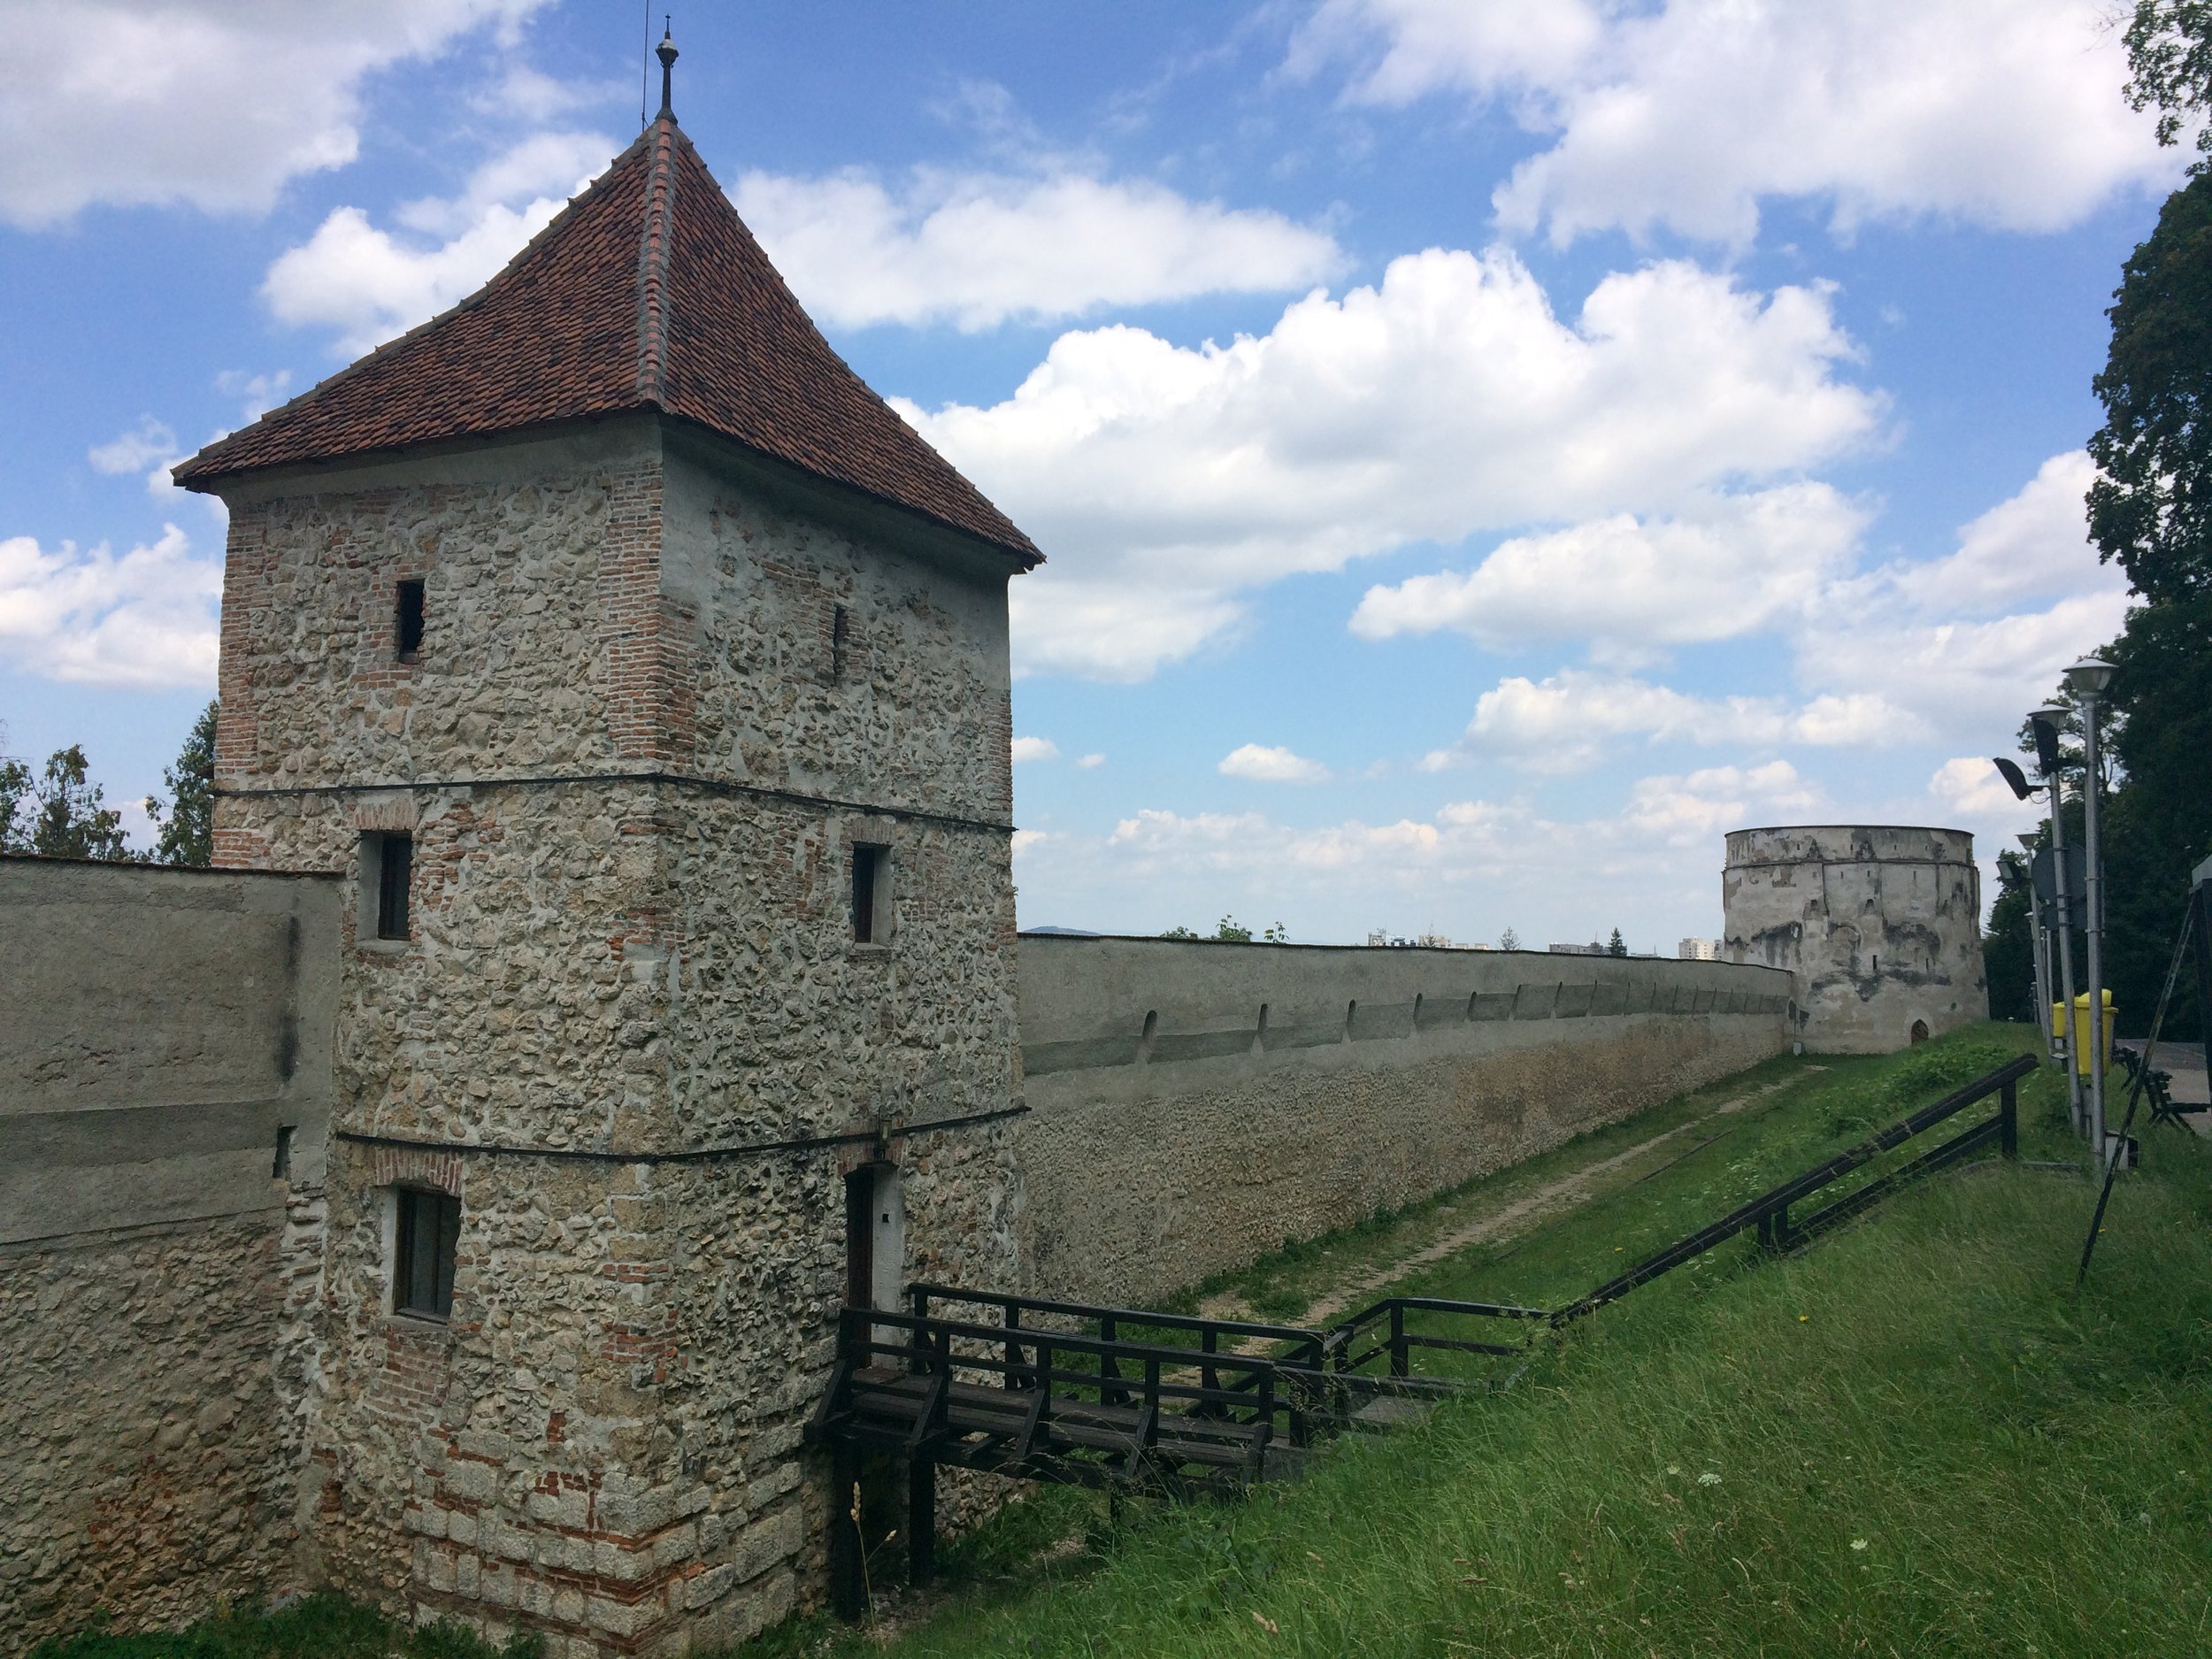 Remains of Brasov fortress walls